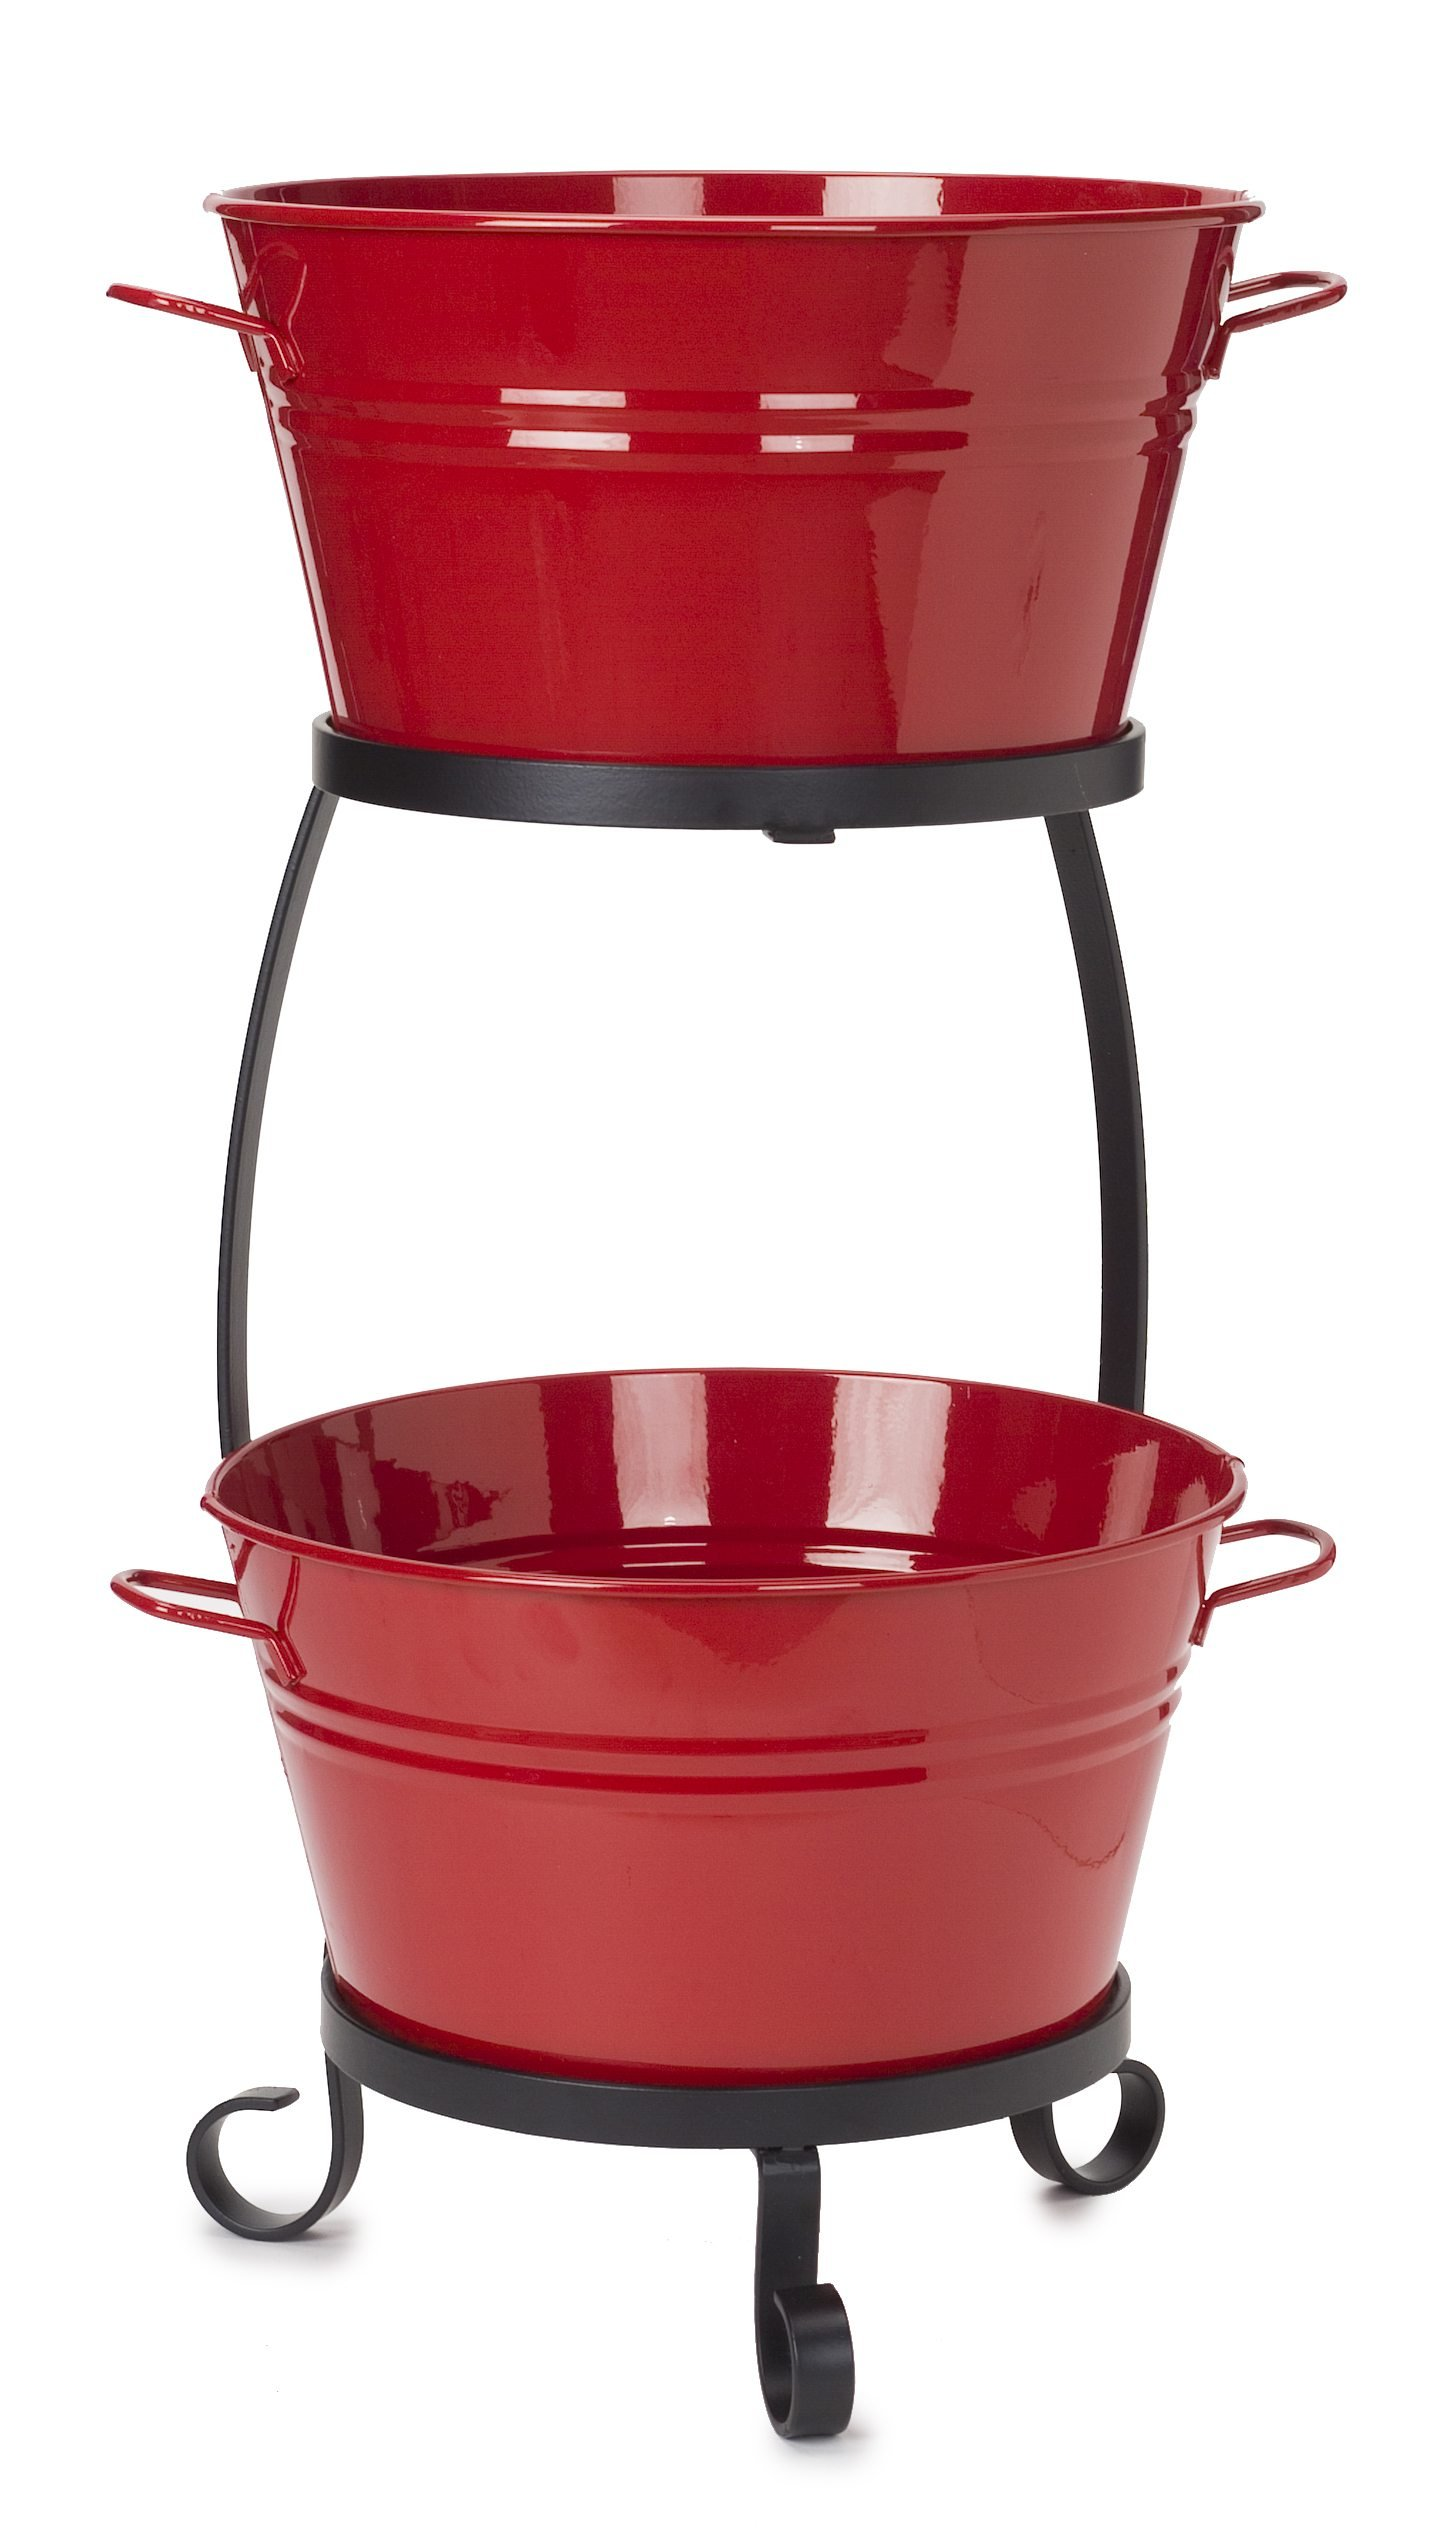 HIT 8020E XR Galvanized Heavy Gauge Steel Beverage Tub with Iron Stand, 13.5 by 30-Inch, Red